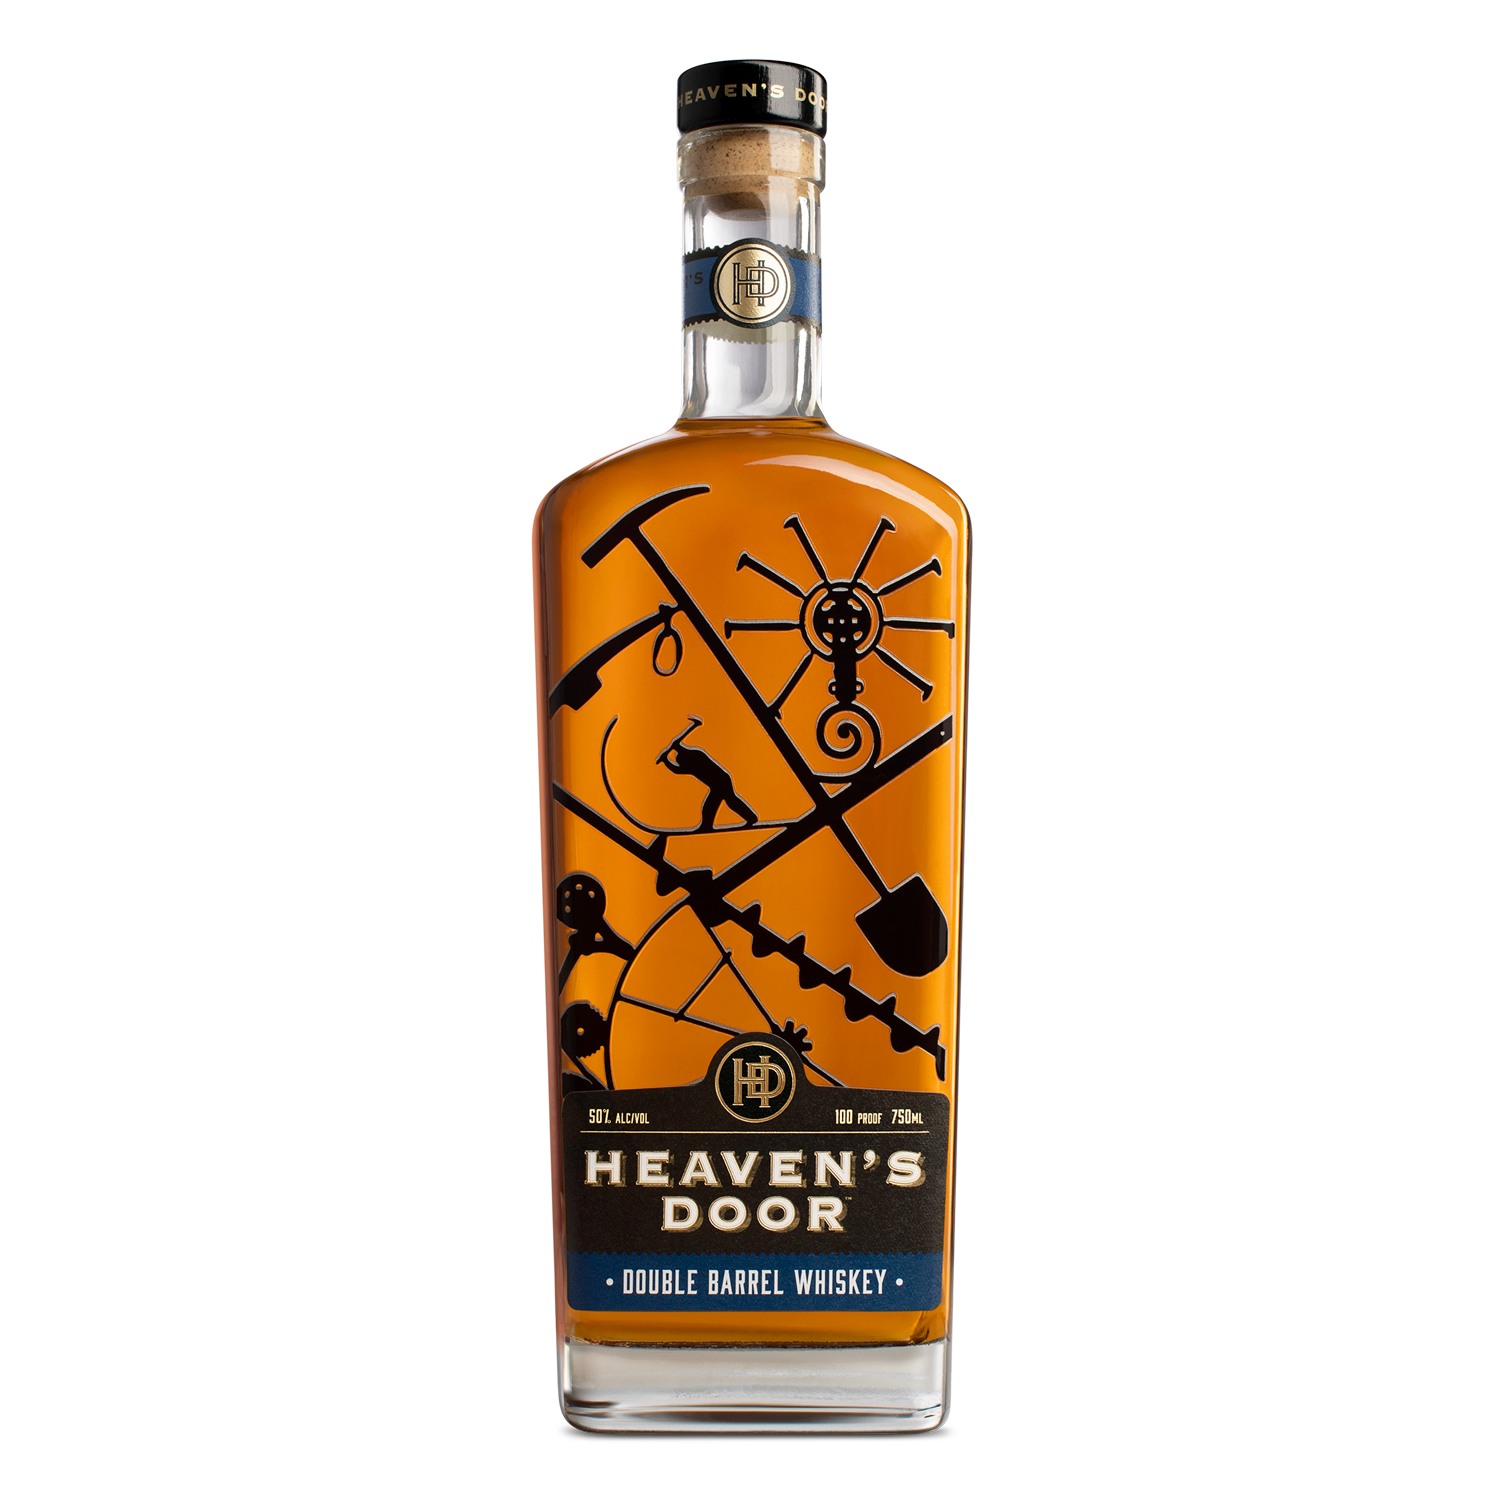 Heaven's Door Double Barrel Whiskey - Bob Dylan